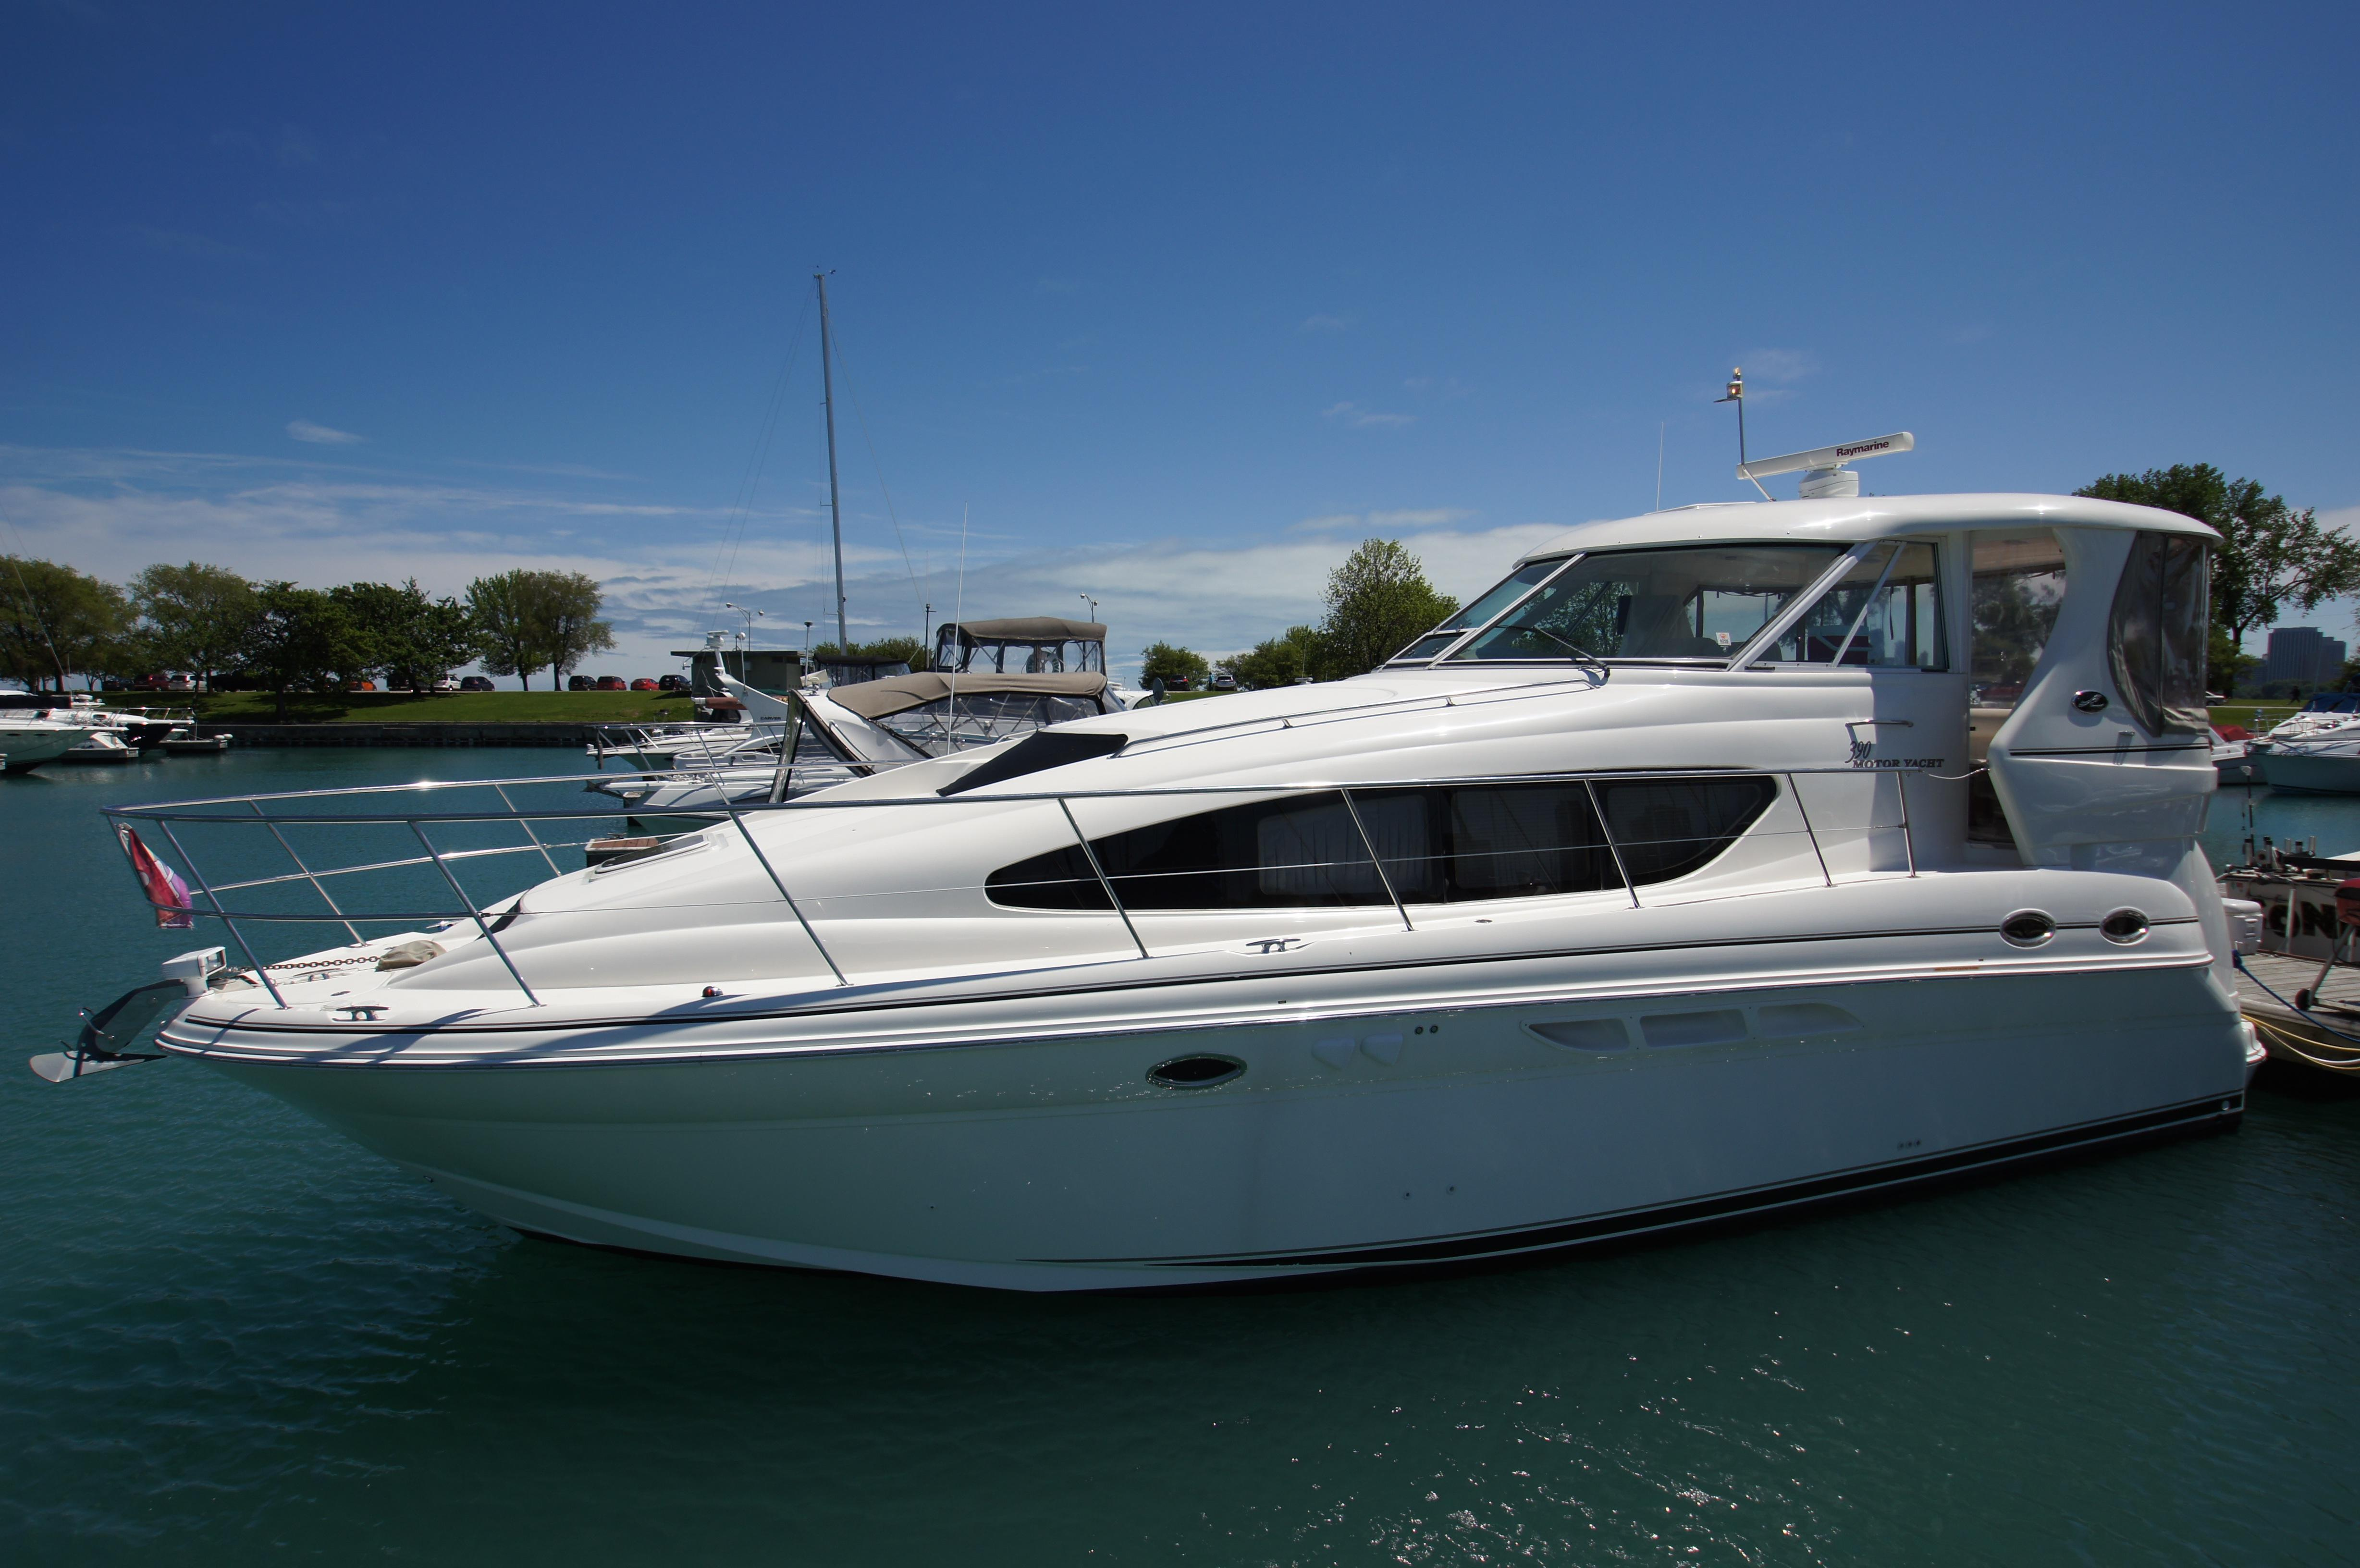 39 sea ray 2003 chicago denison yacht sales for Sea ray motor yacht for sale